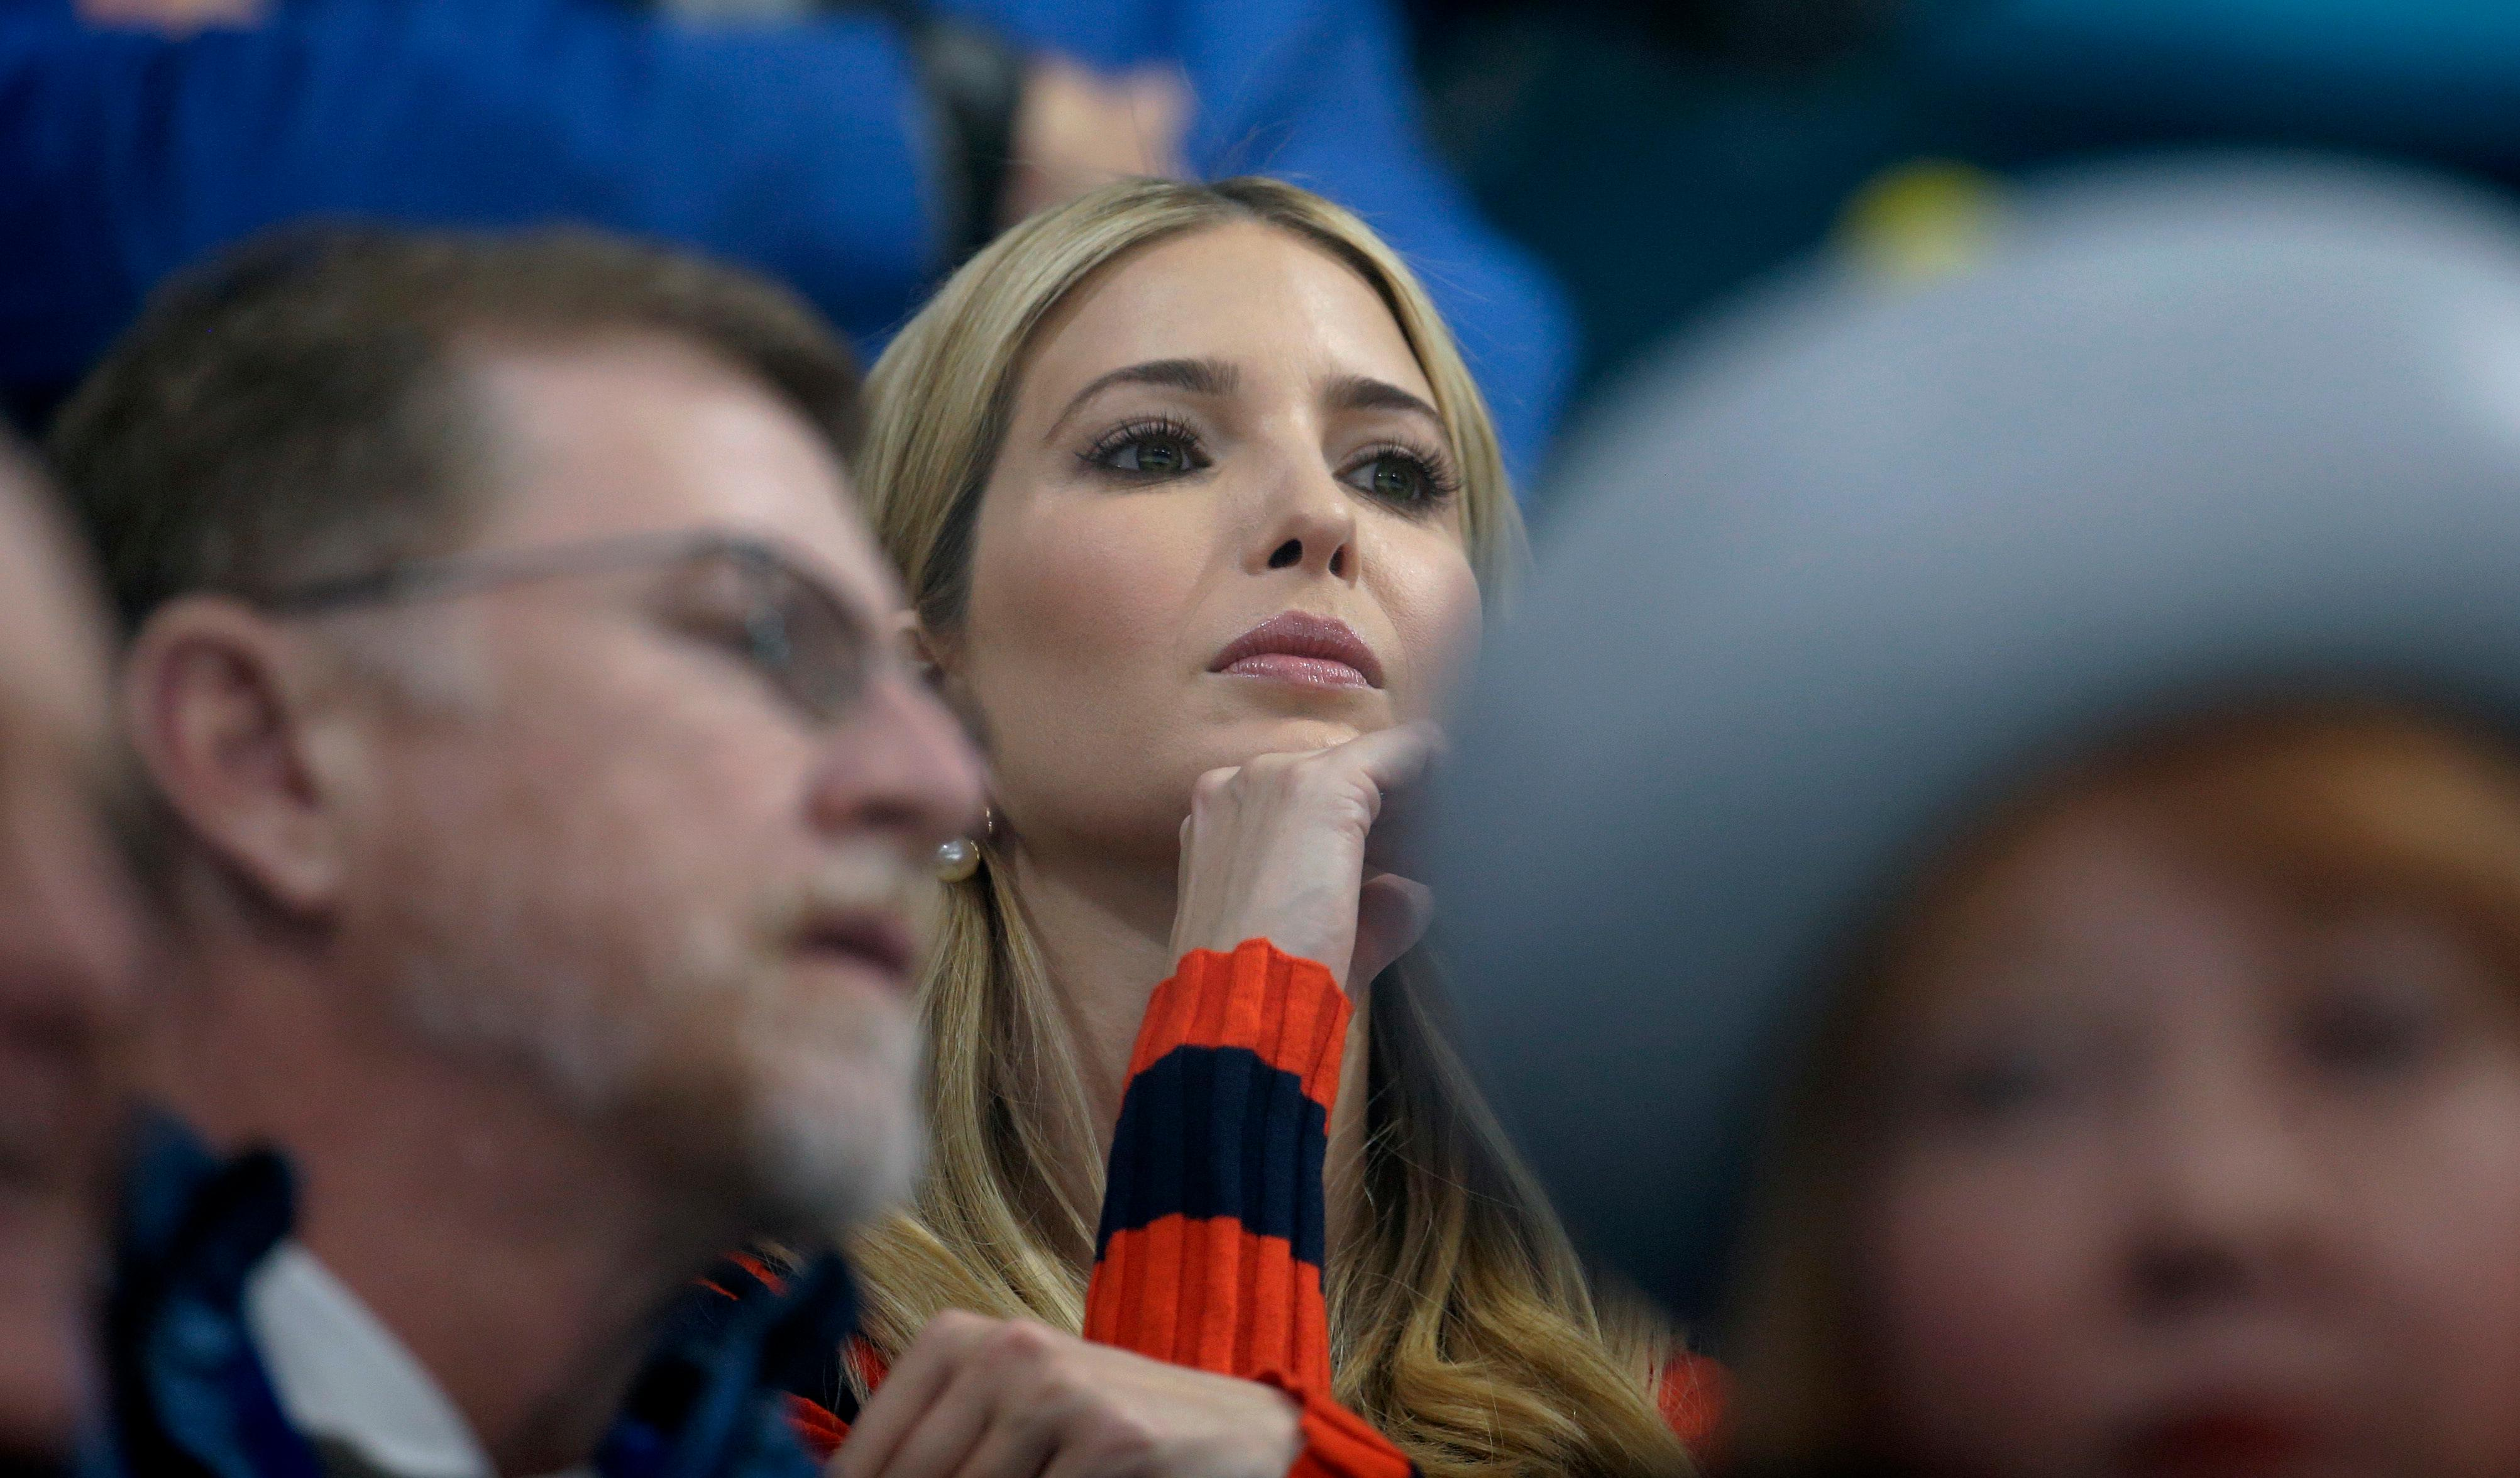 Ivanka Trump, daughter of U.S. President Donald Trump, watches the men's final curling match between United States and Sweden at the 2018 Winter Olympics in Gangneung, South Korea, Saturday, Feb. 24, 2018. (AP Photo/Natacha Pisarenko)